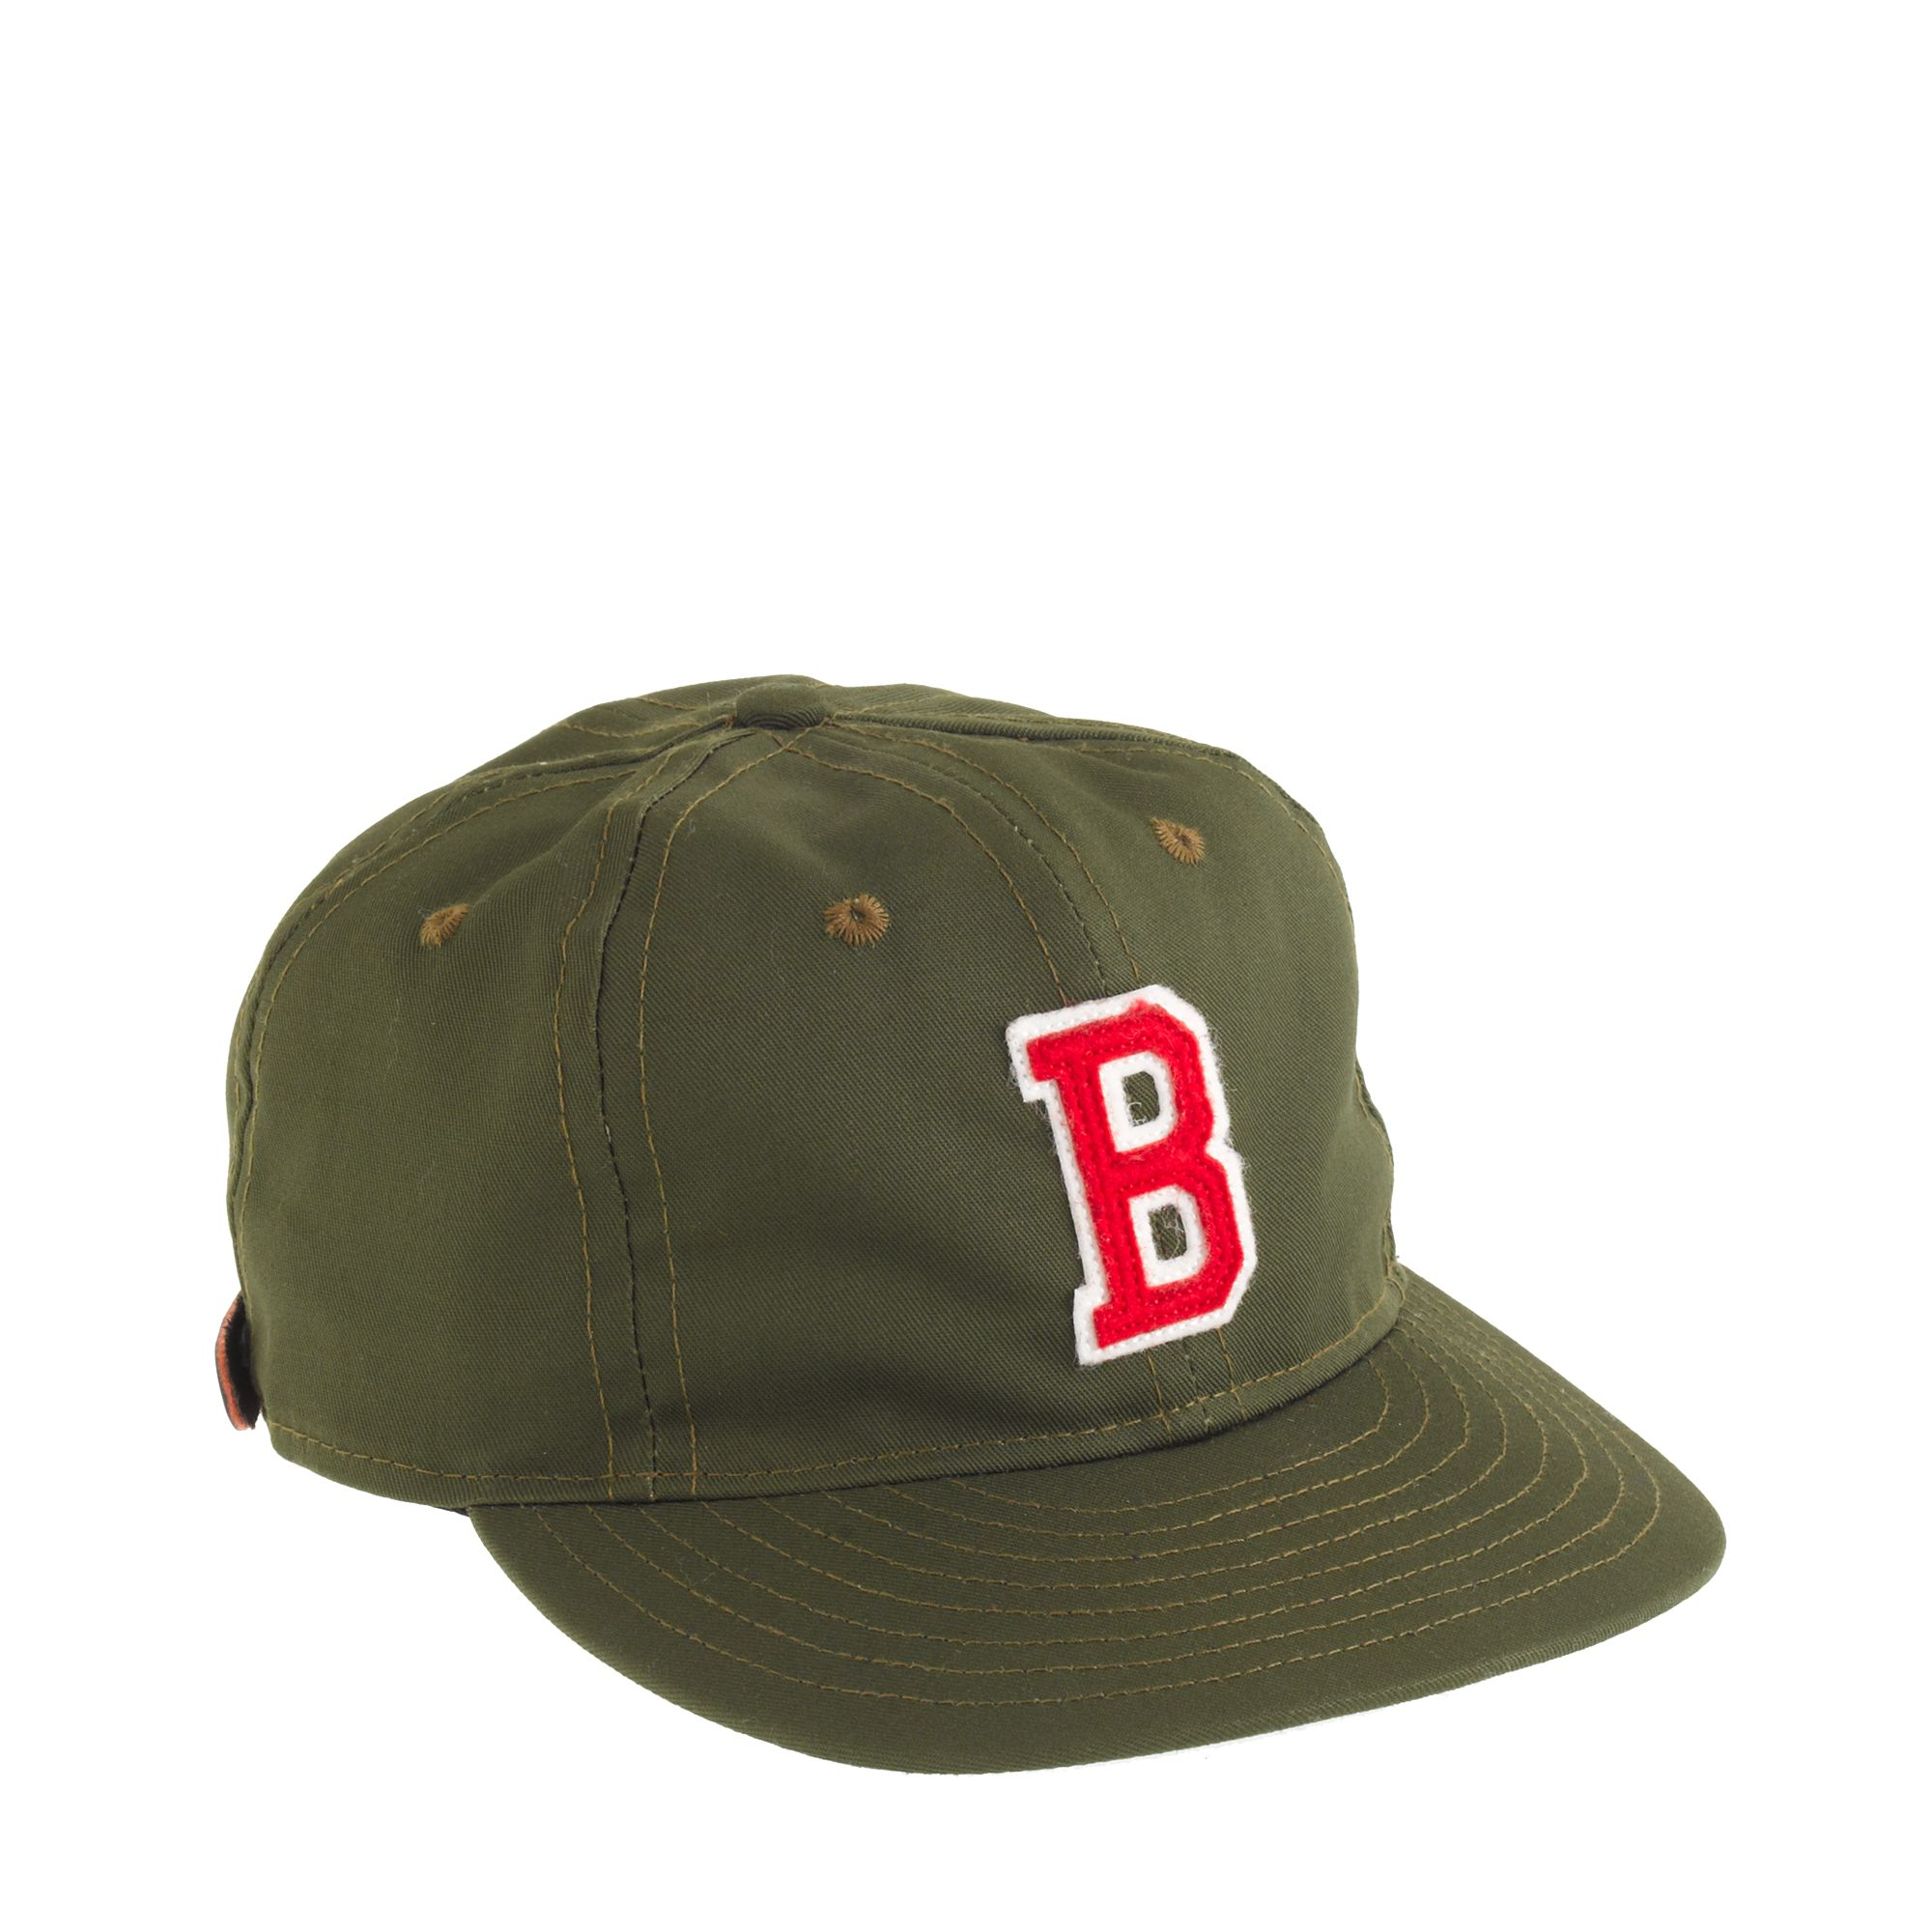 Lyst - J.Crew Ebbets Field Flannels For Buffalo Bisons Ball Cap in ... e9717b613a08